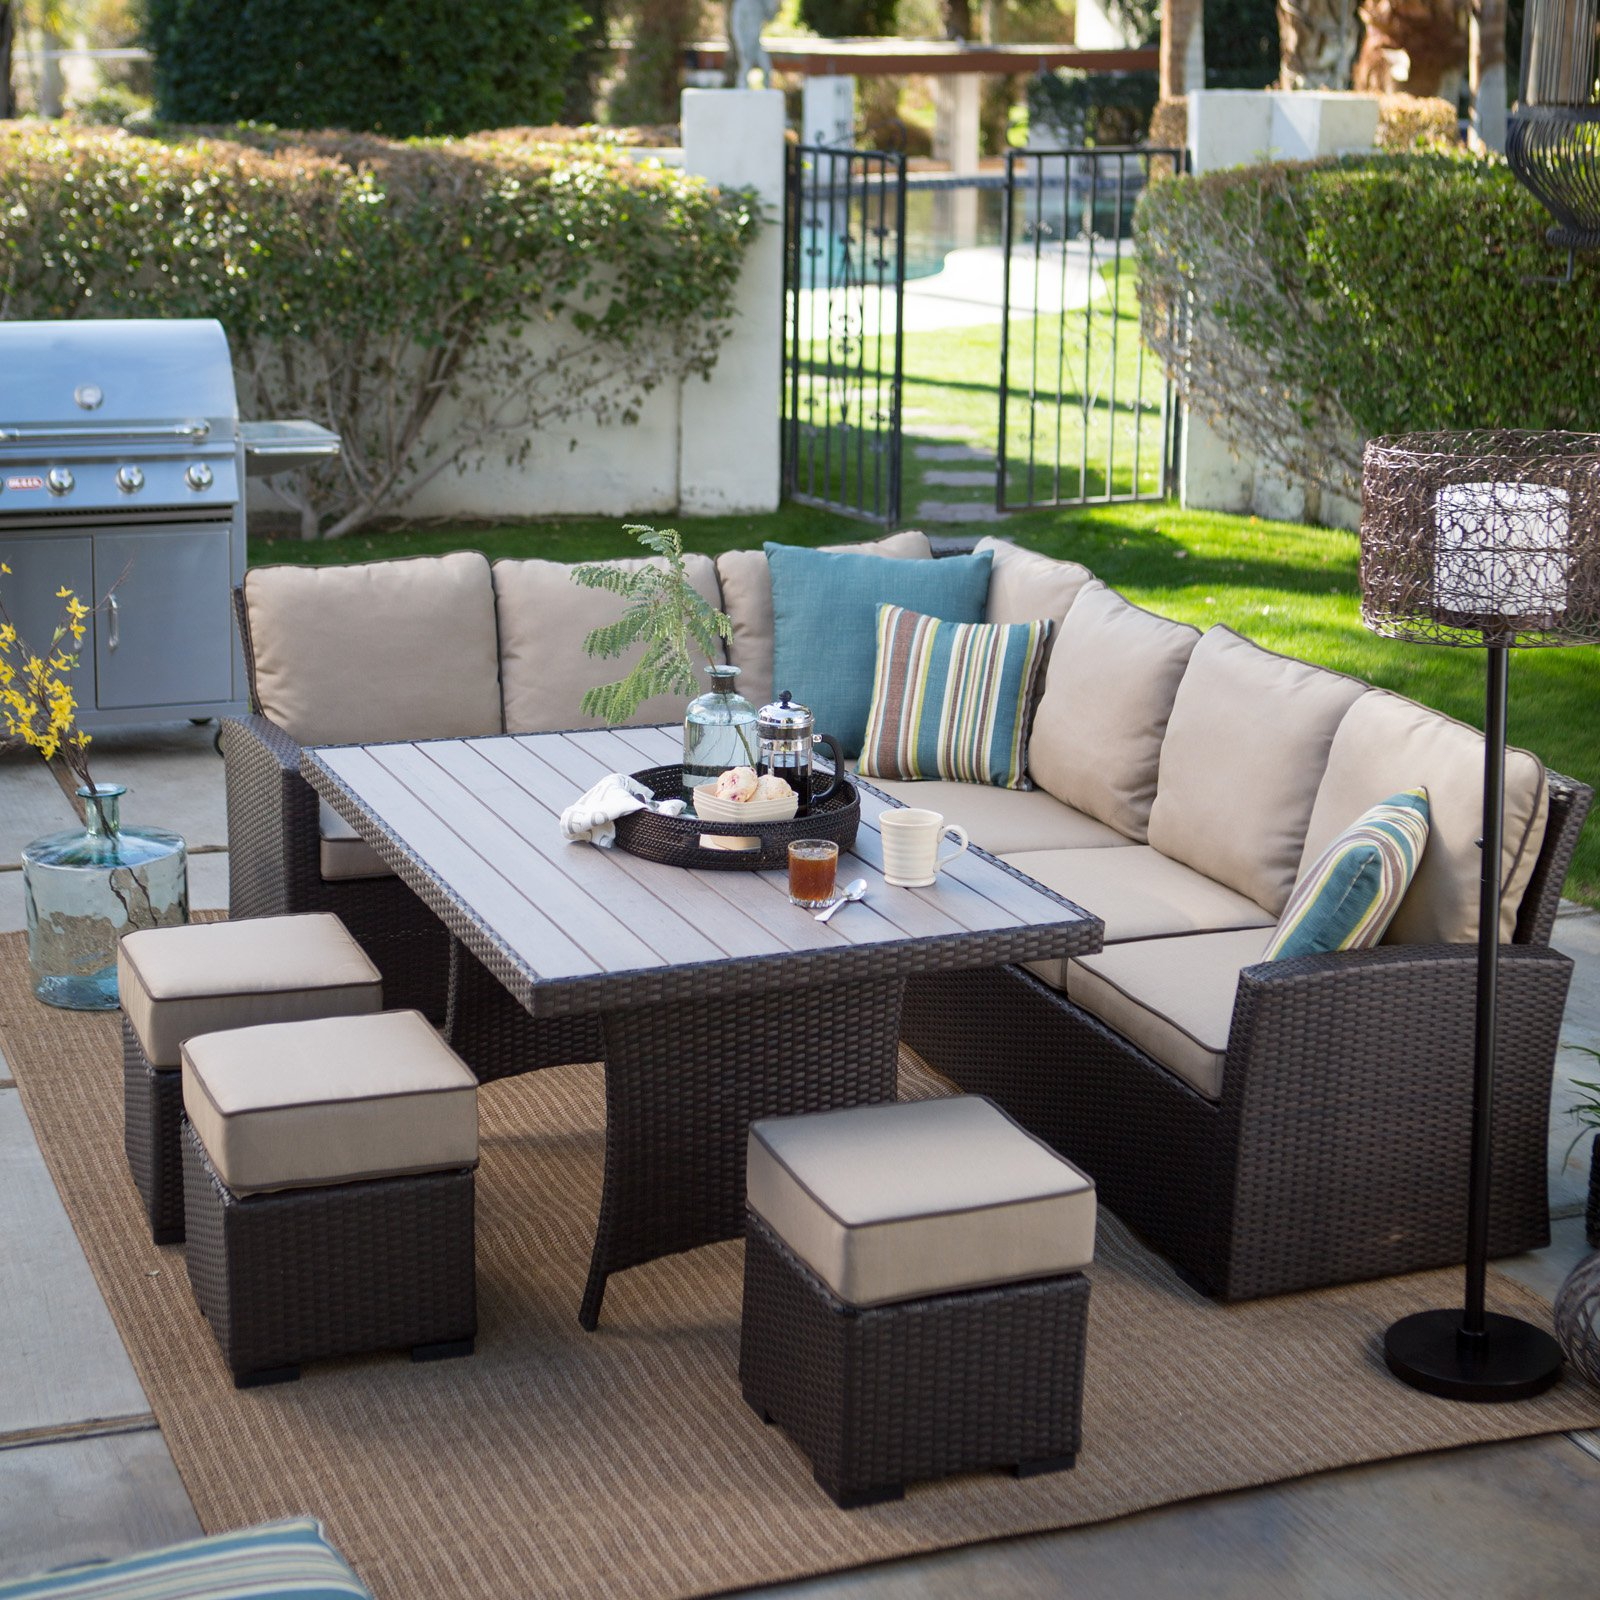 with person luxury collection stationary furniture cast the patio amalia chairs aluminum dining big set